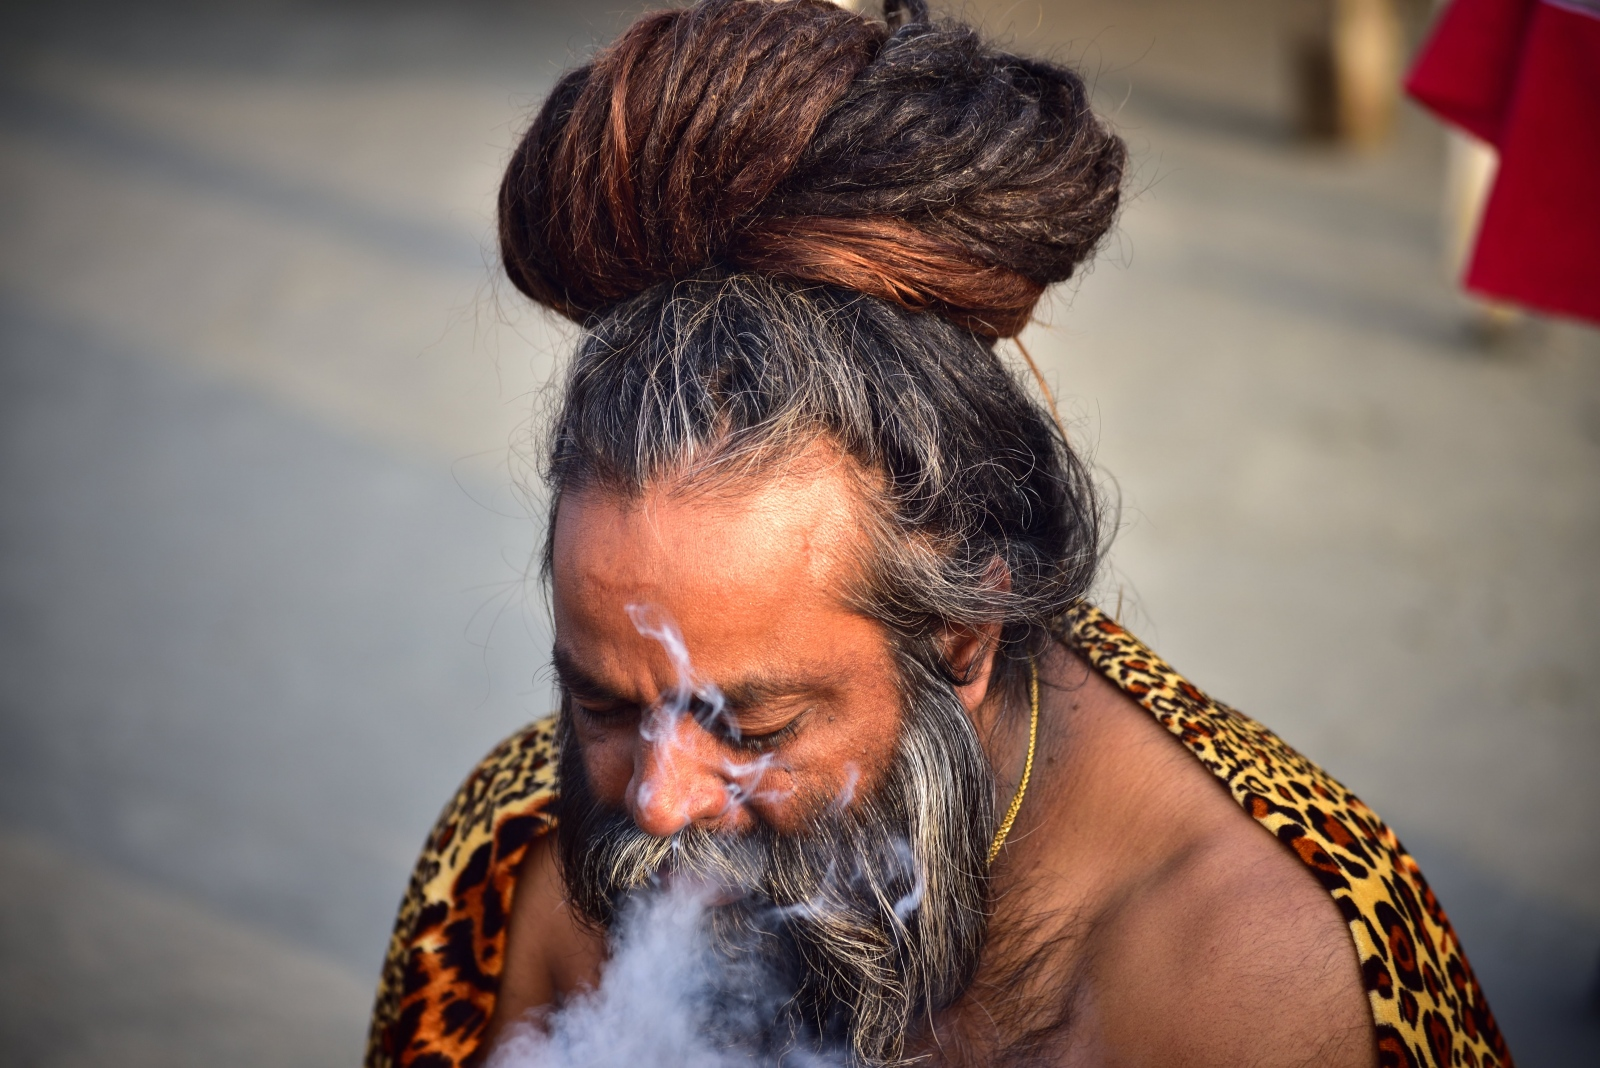 Photography image - Indian Monk